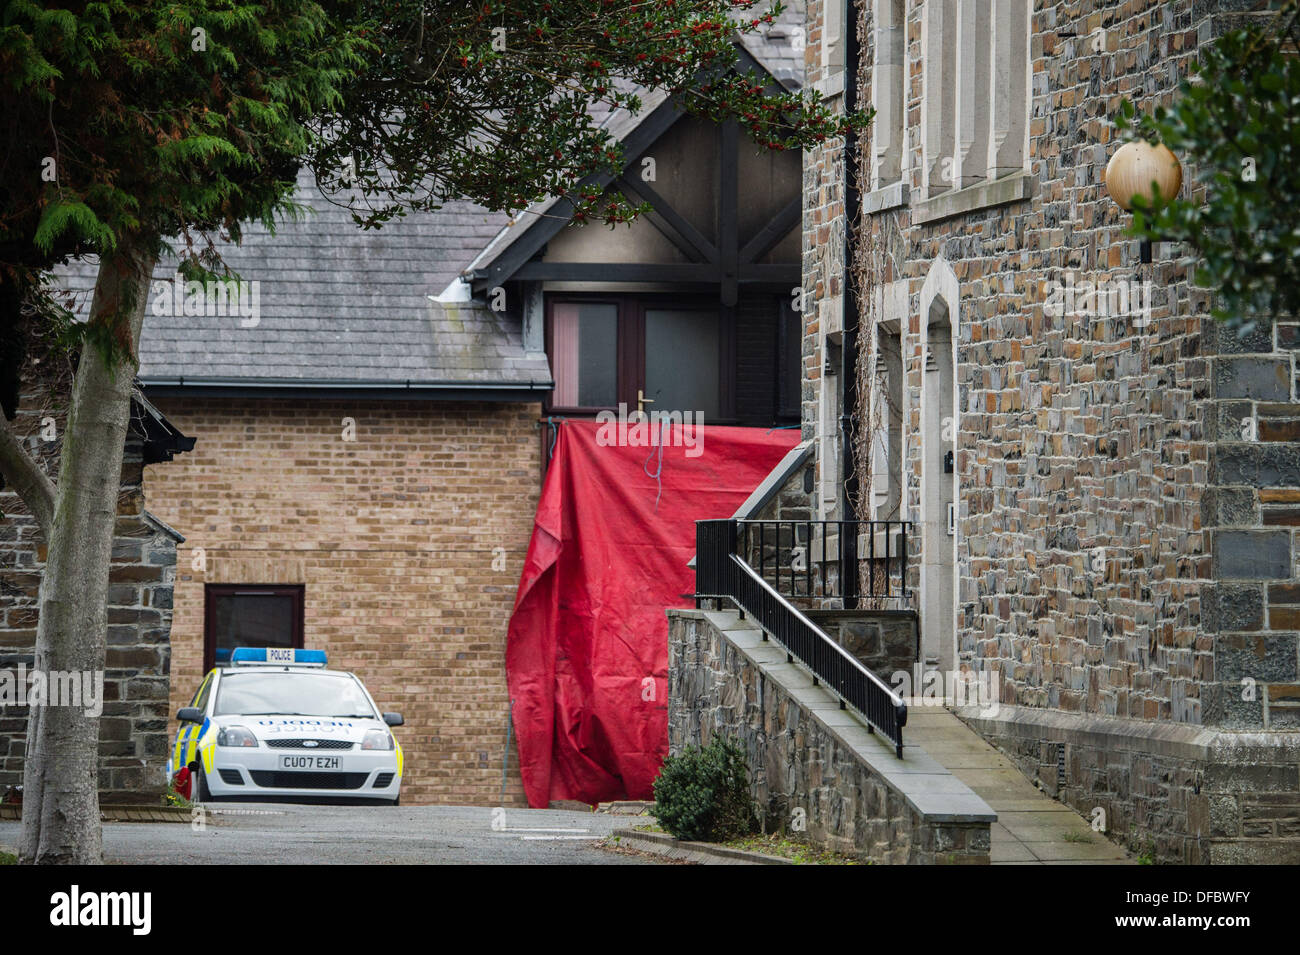 Aberystwyth, Wales, UK . 02nd Oct, 2013. An elderly woman , believed to be in her 70's, has died in a fire at her flat in the Glyn Padarn sheltered housing complex, Llanbadarn Aberystwyth UK, operated by Tai Cantref housing association The emergency services were alerted at 8.30pm on Tuesday night and evacuated all the remaining 27 residents , 25 of whom were allowed back into their properties at 2.00am this morning, with only the occupants go the two flats adjacent to the fire still not able to return home Aberystwyth Wales UK, Wednesday 2 October 2013 photo © keith morris © keith morris/Alam - Stock Image